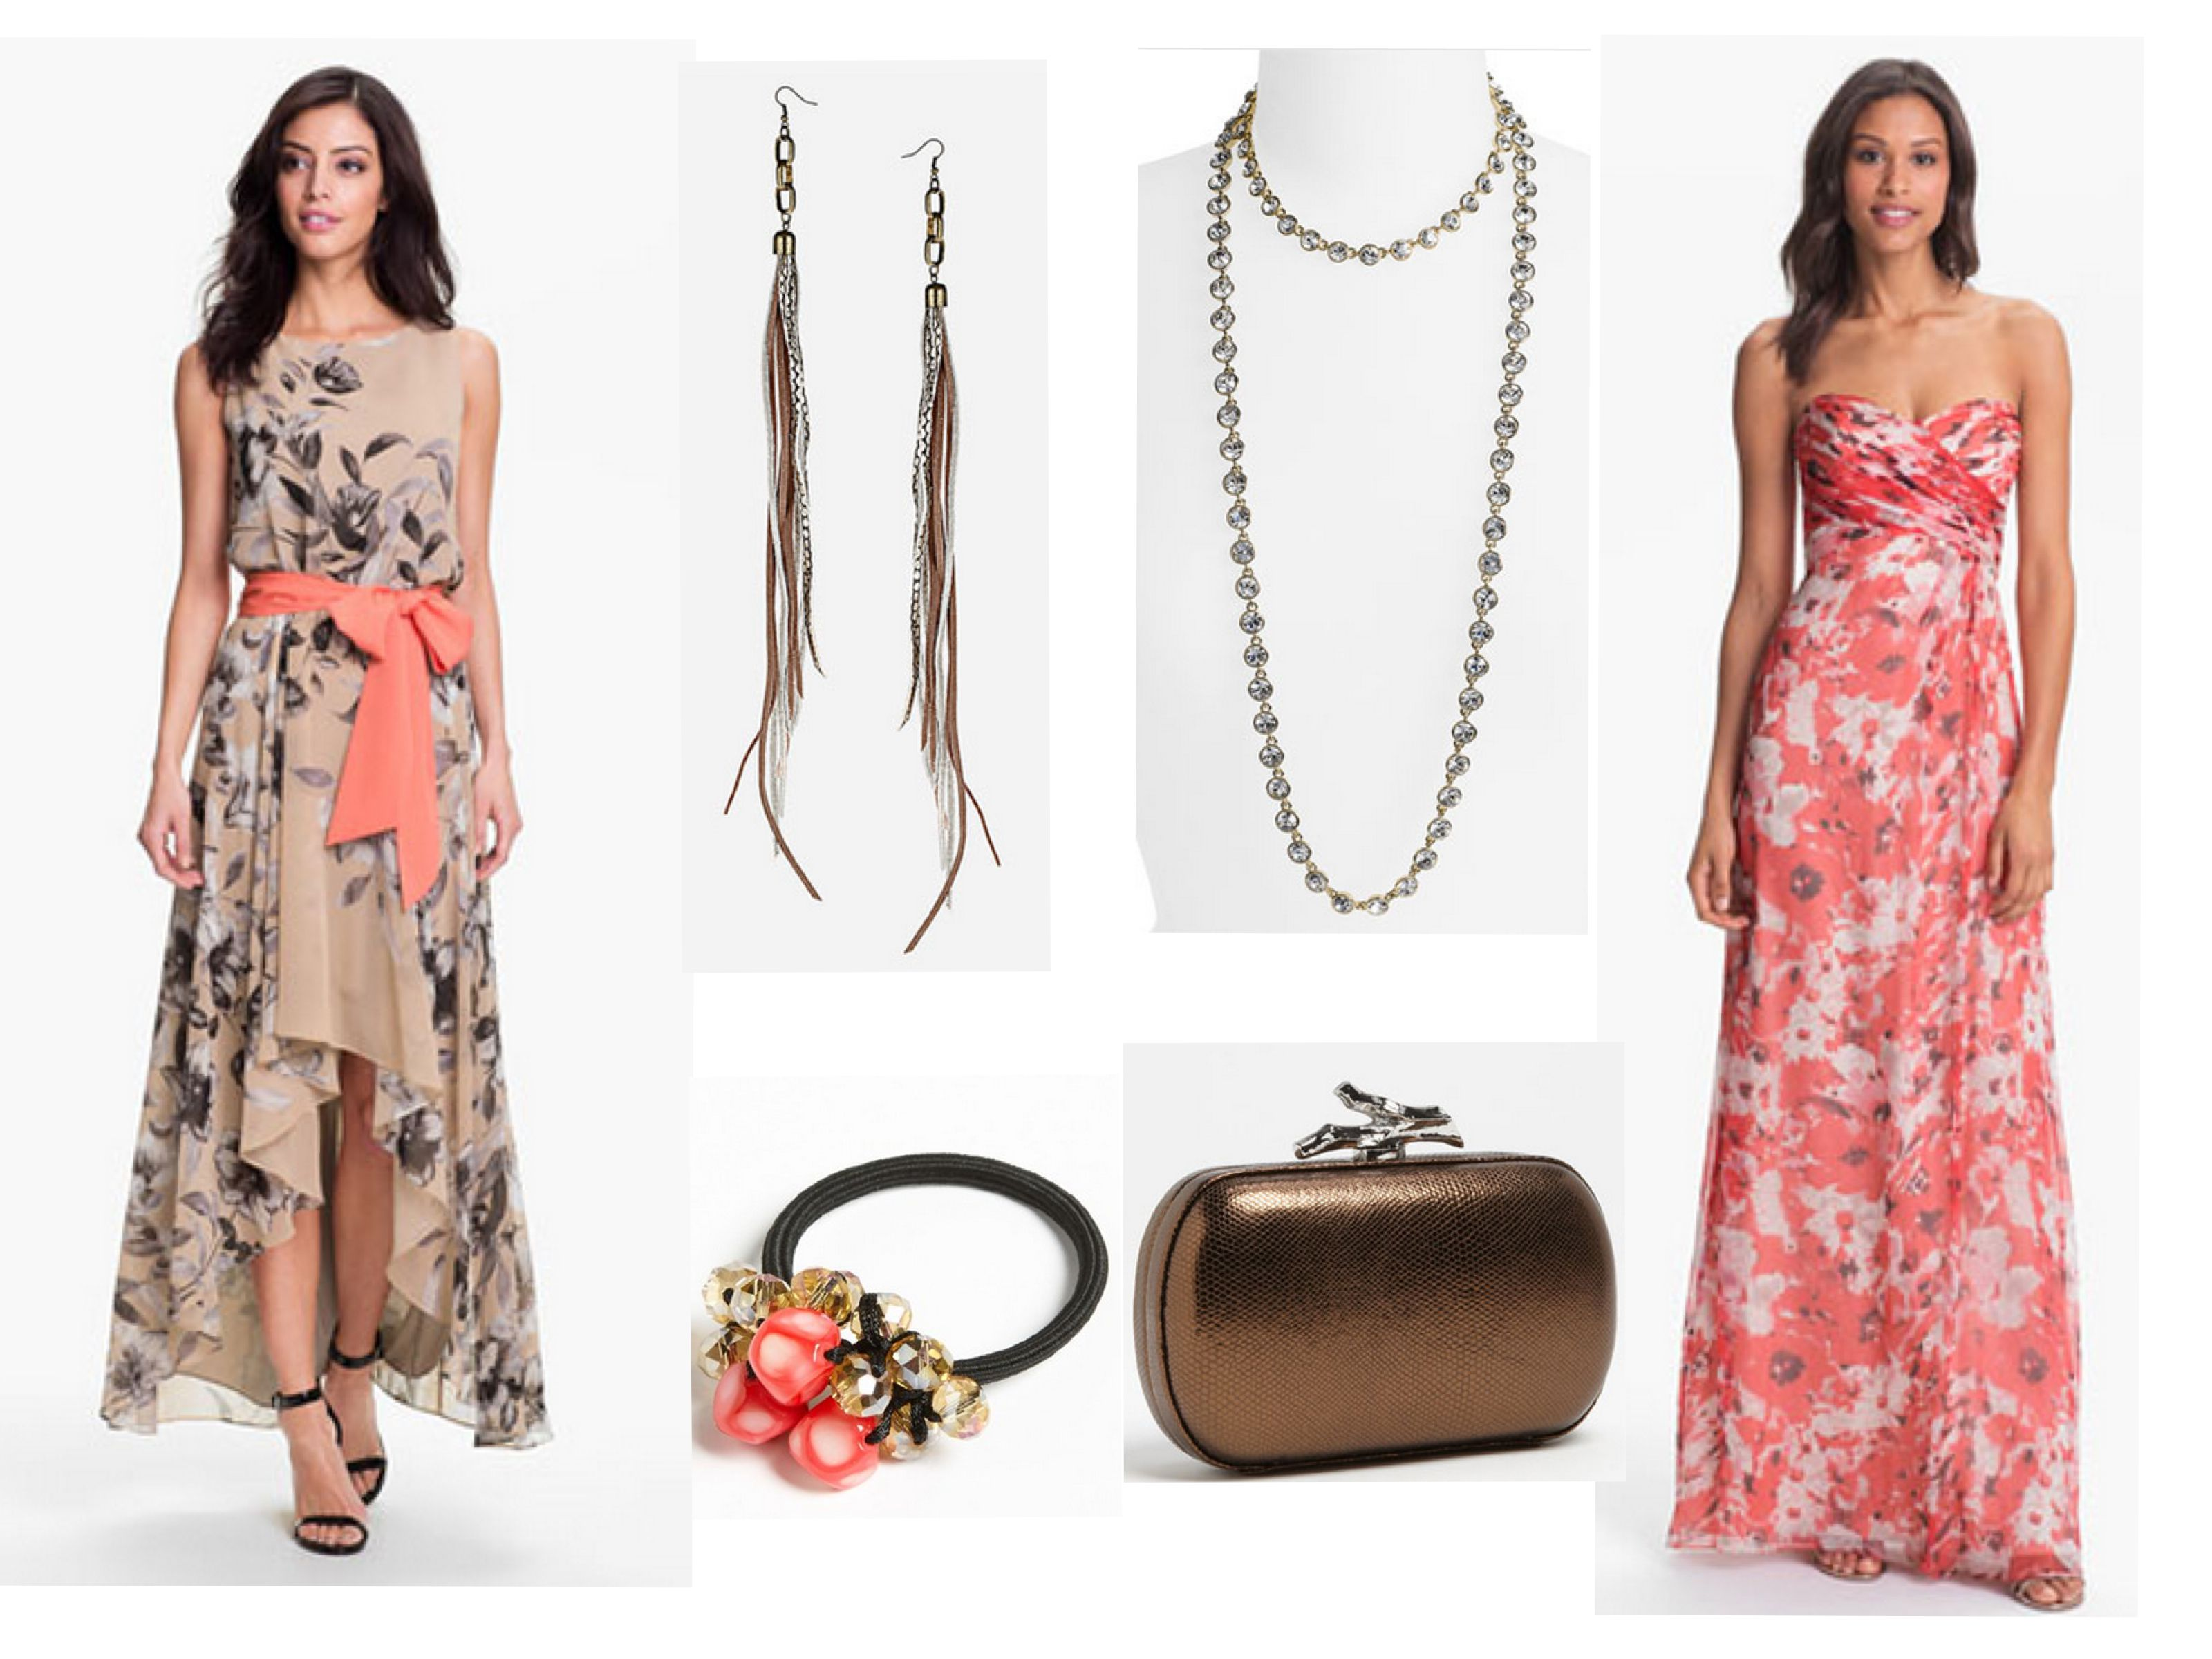 6 Outfits To Wear To A Backyard Style Wedding - Rustic Wedding Chic